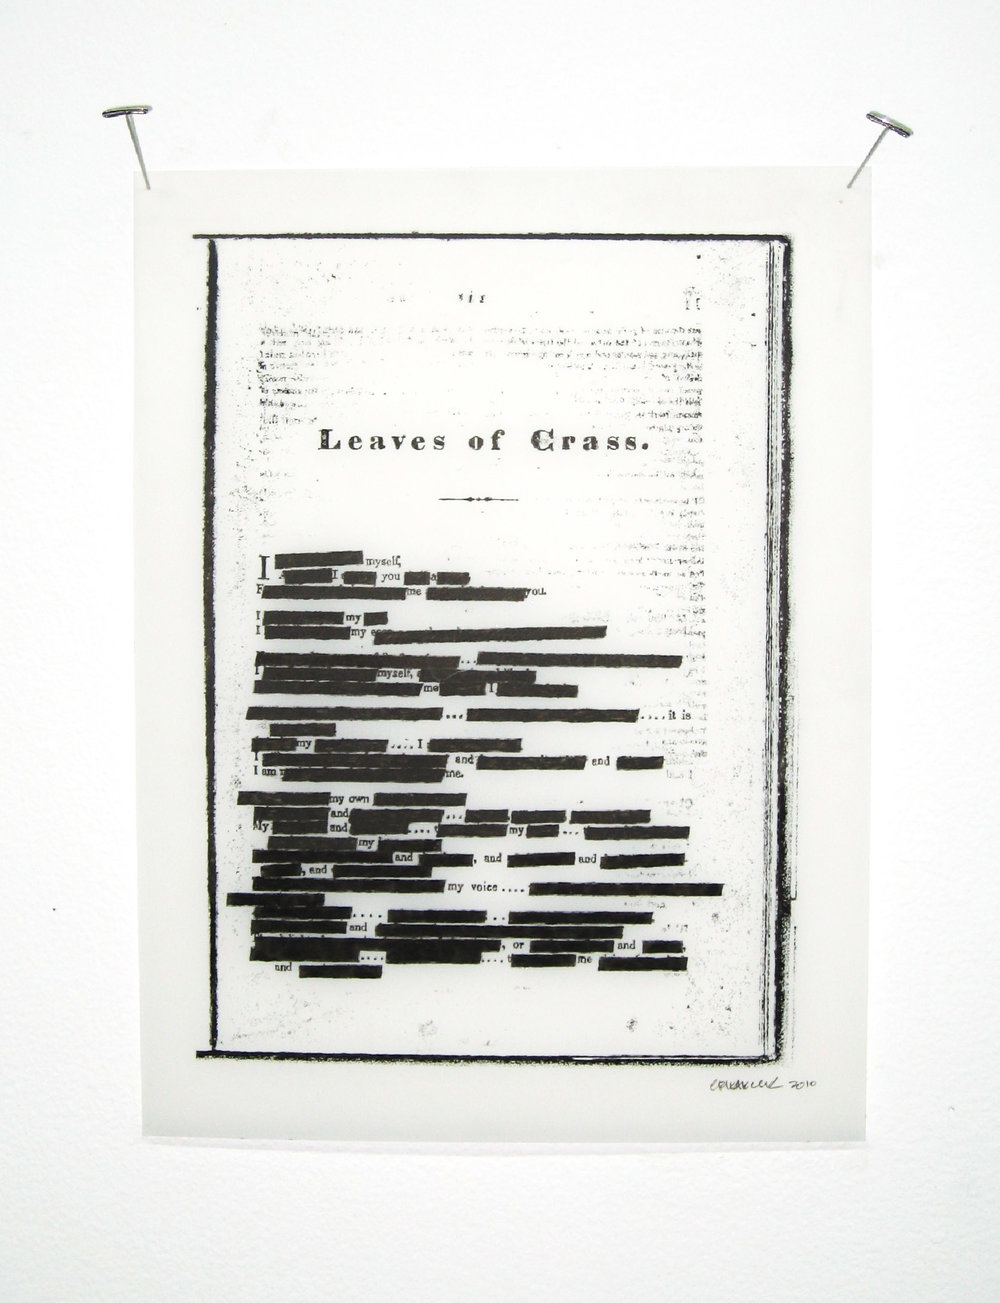 Leaves of Crass, 2011